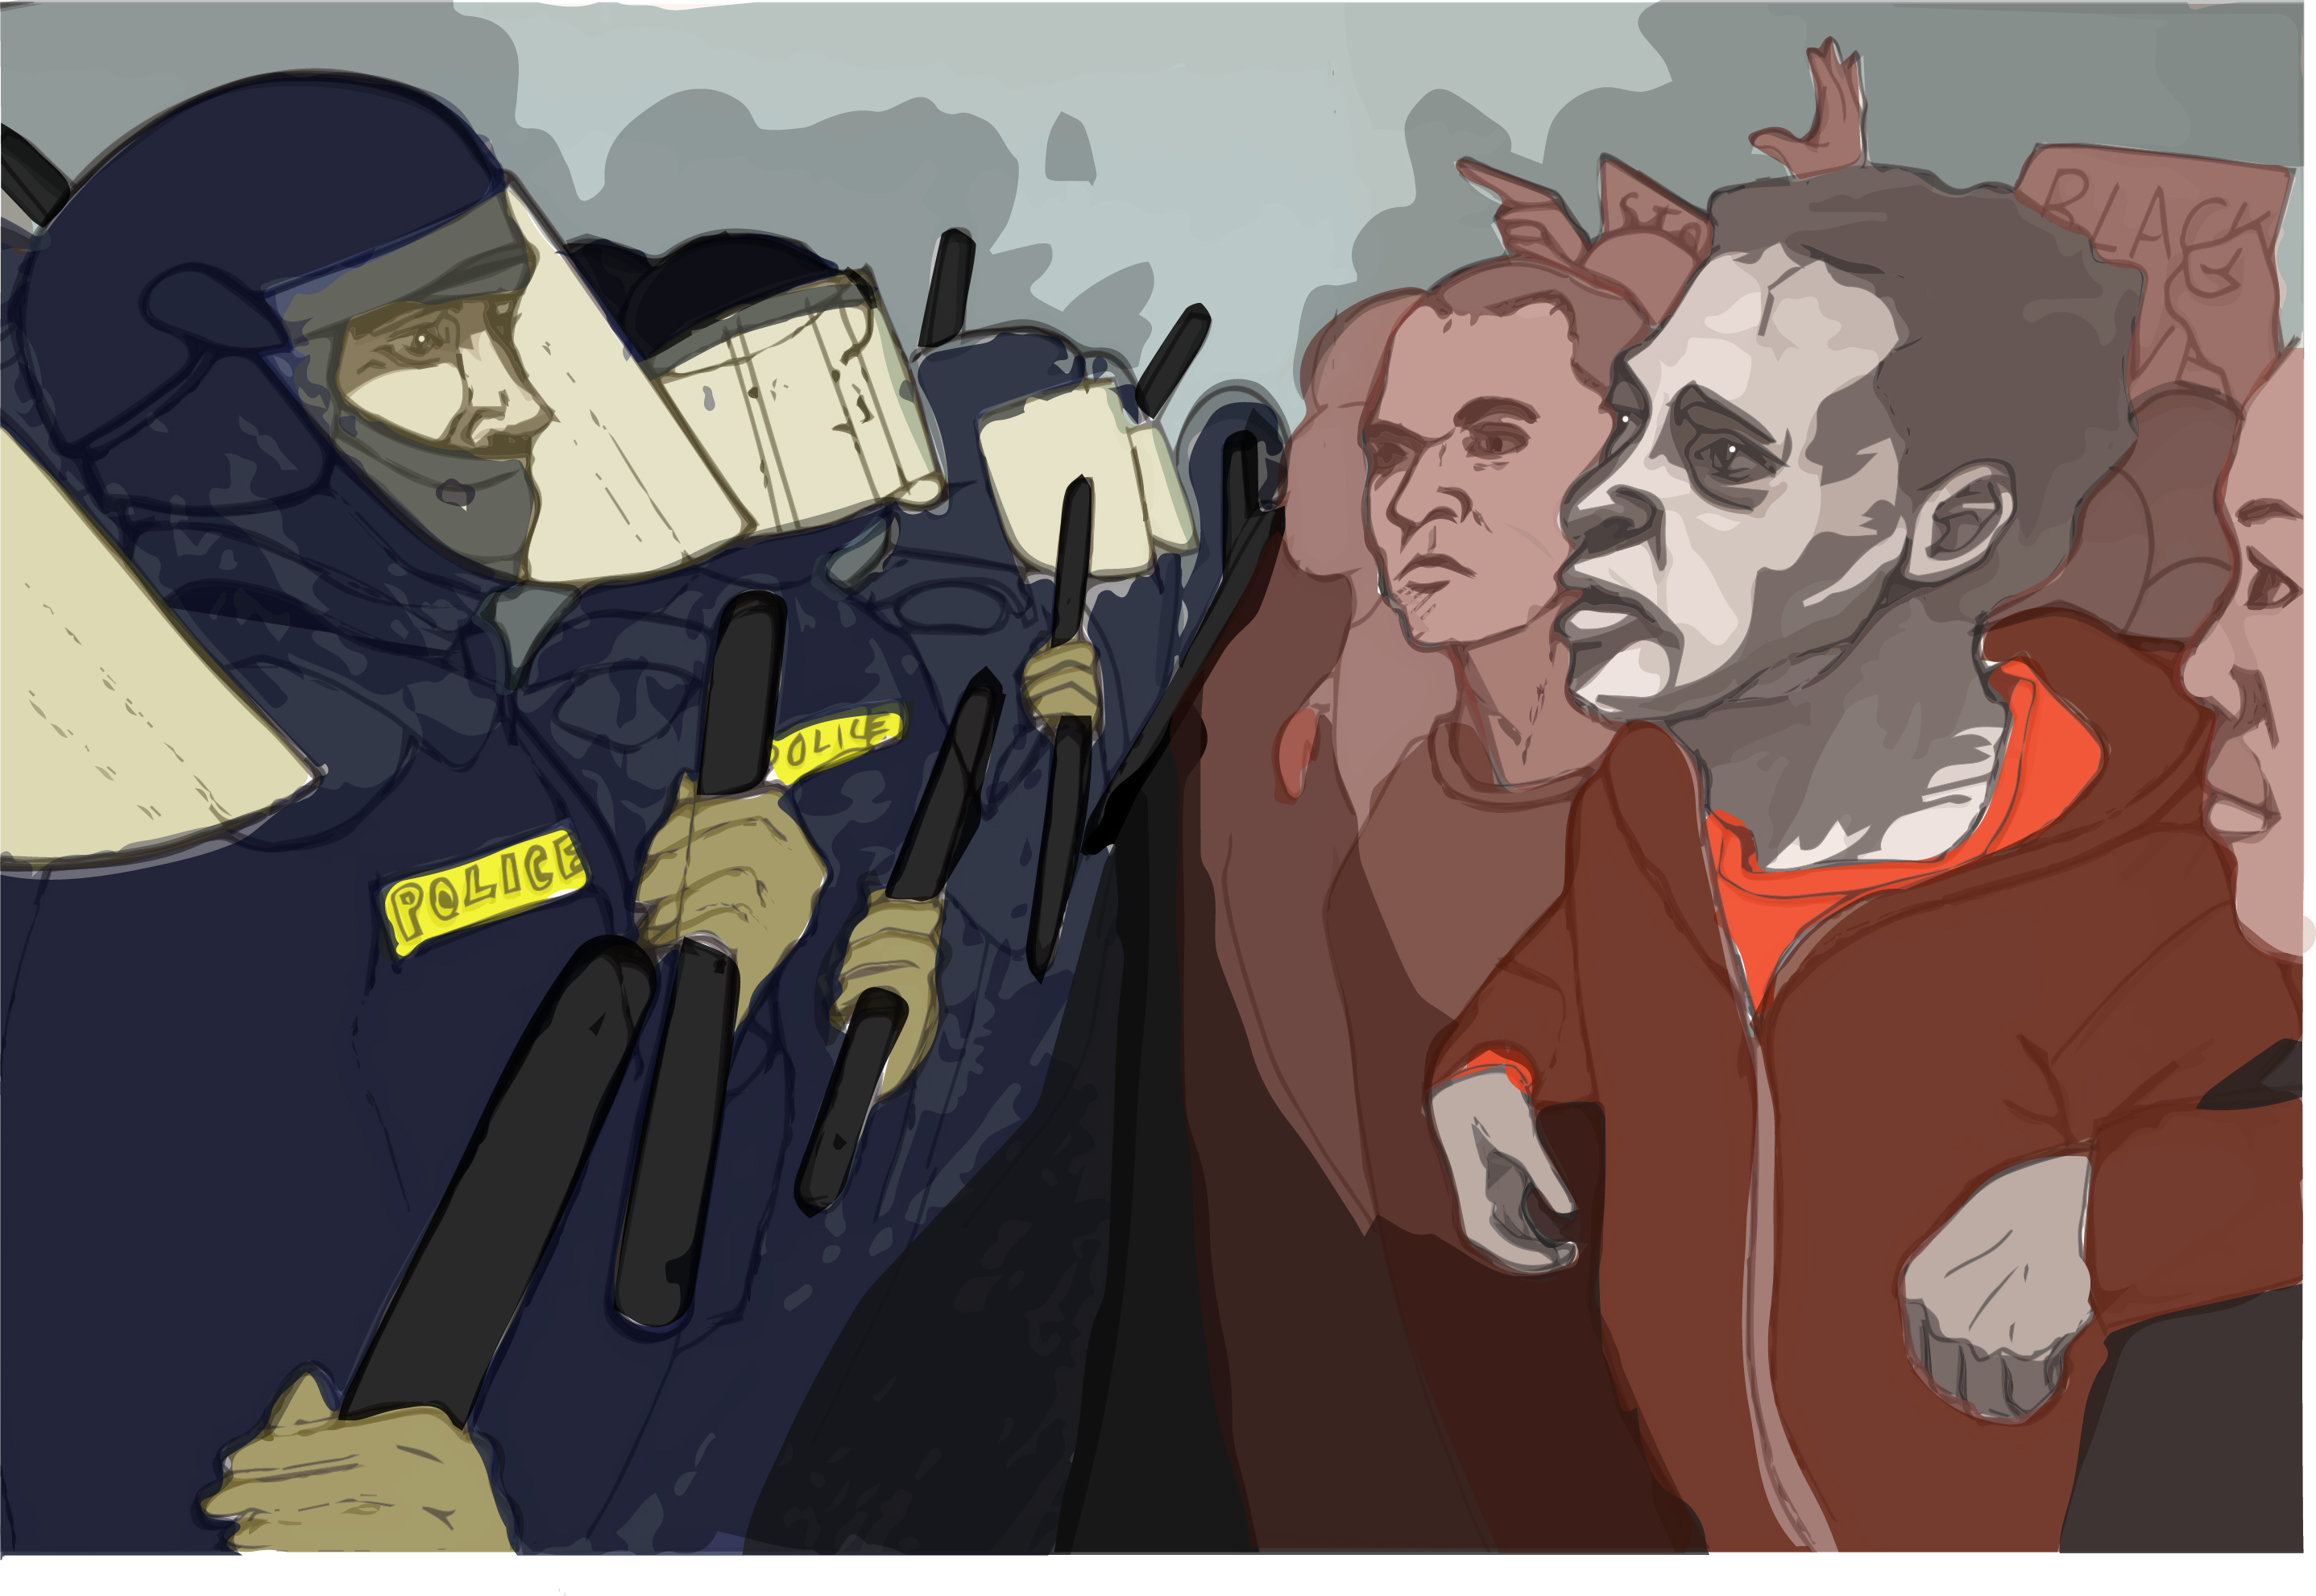 Illustration of protestors confronting police dressed in riot gear